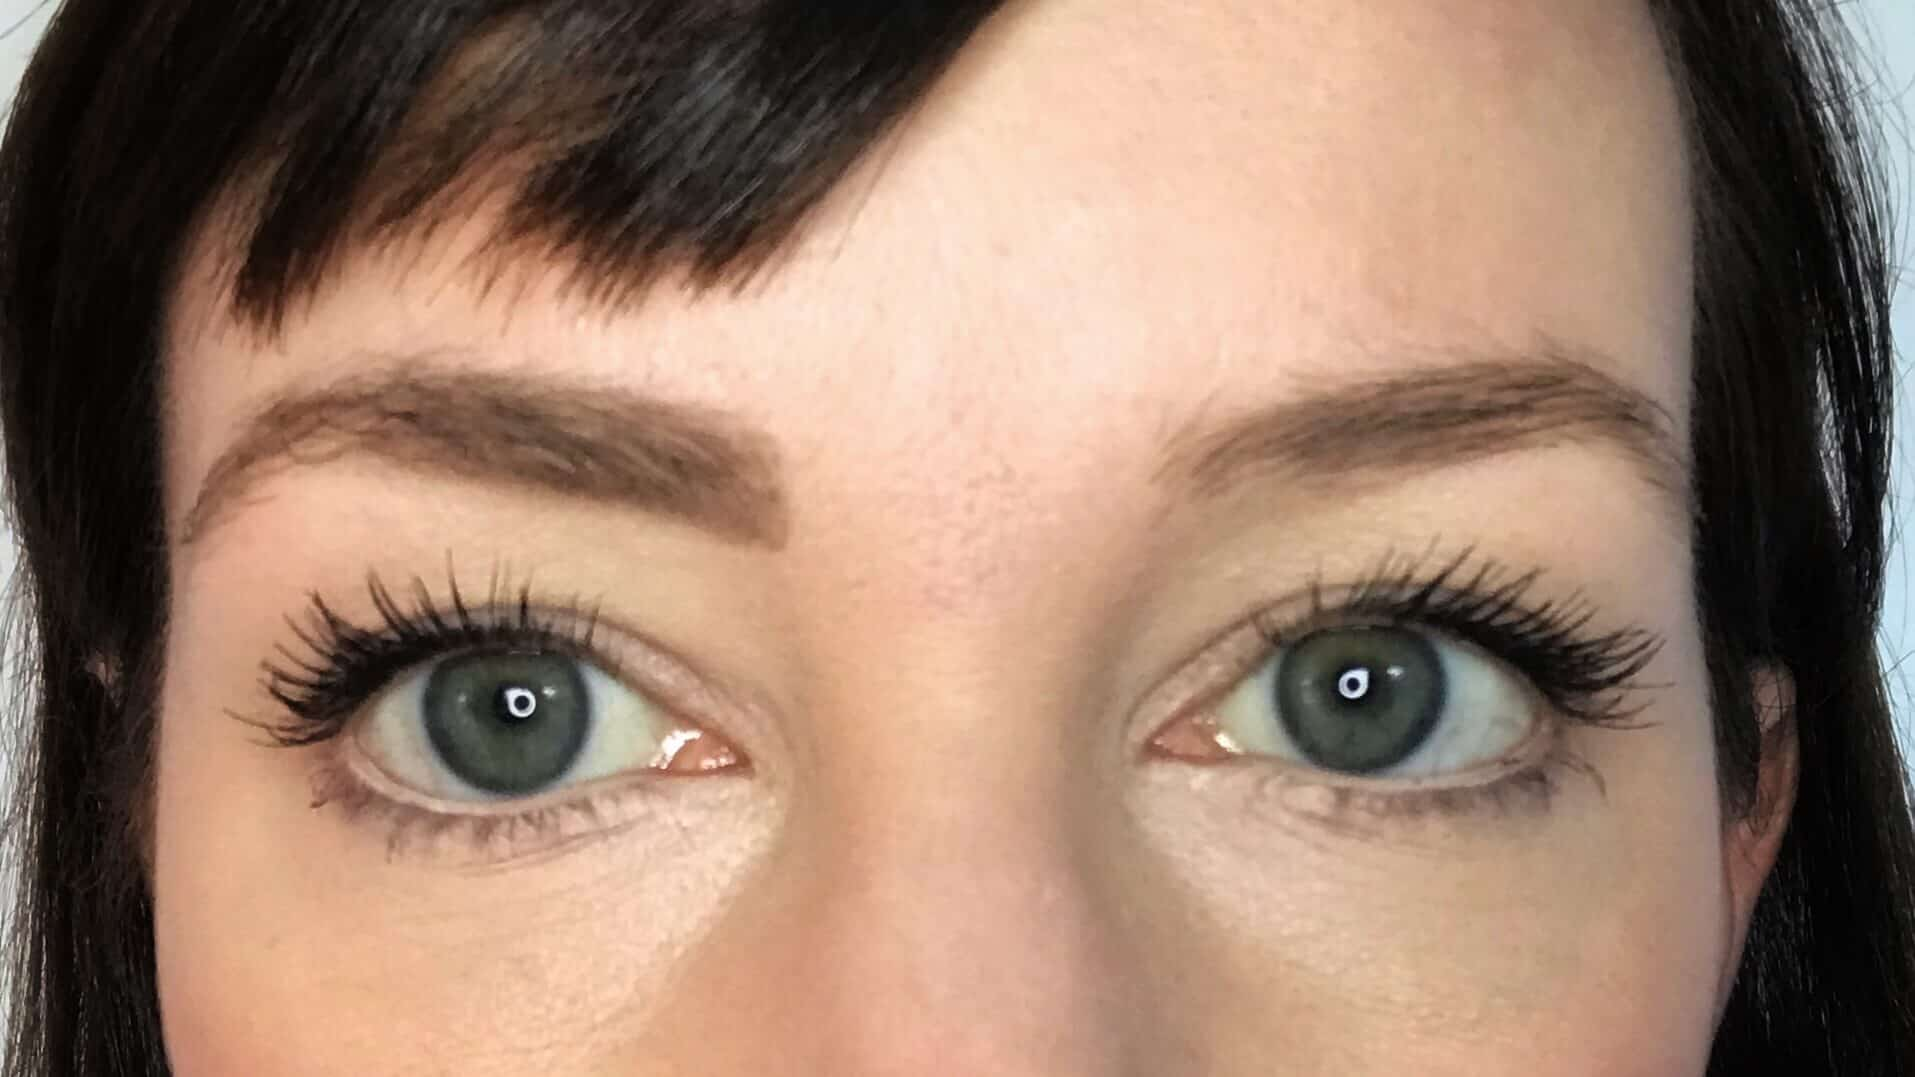 One eyebrow with natural eyebrow pencil to make them look fuller